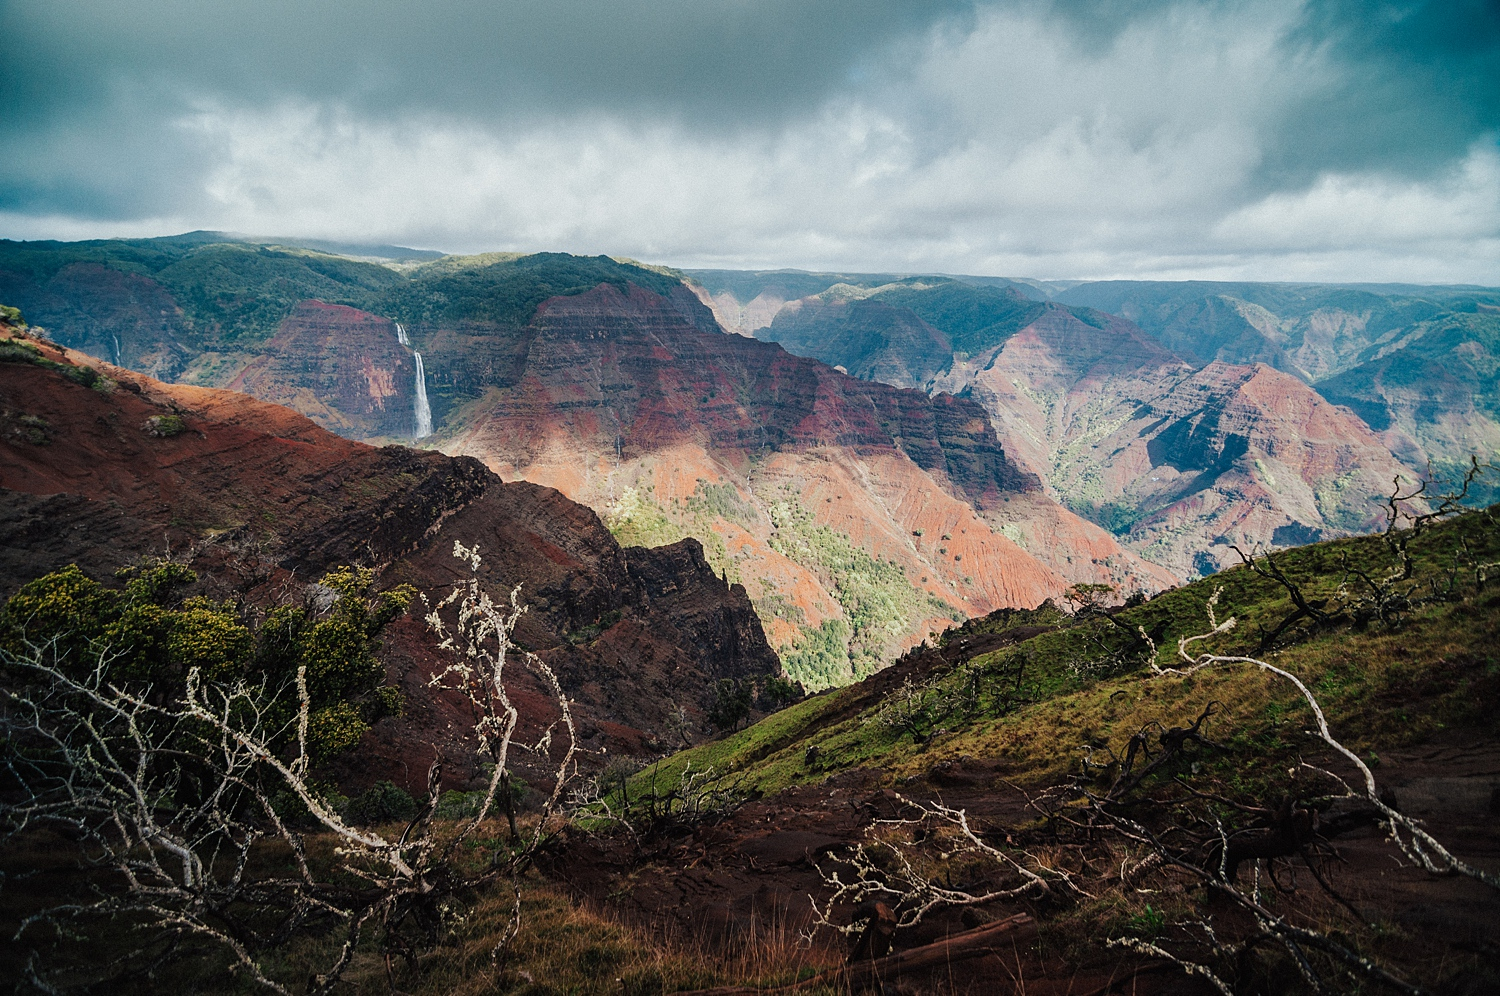 """KAUAI, HAWAII  Let's get one thing straight: Hawaii doesn't just have beautiful white sand beaches... Kauai is actually home to a massive """"Red Canyon"""" - one of my favorite spots on the Island."""